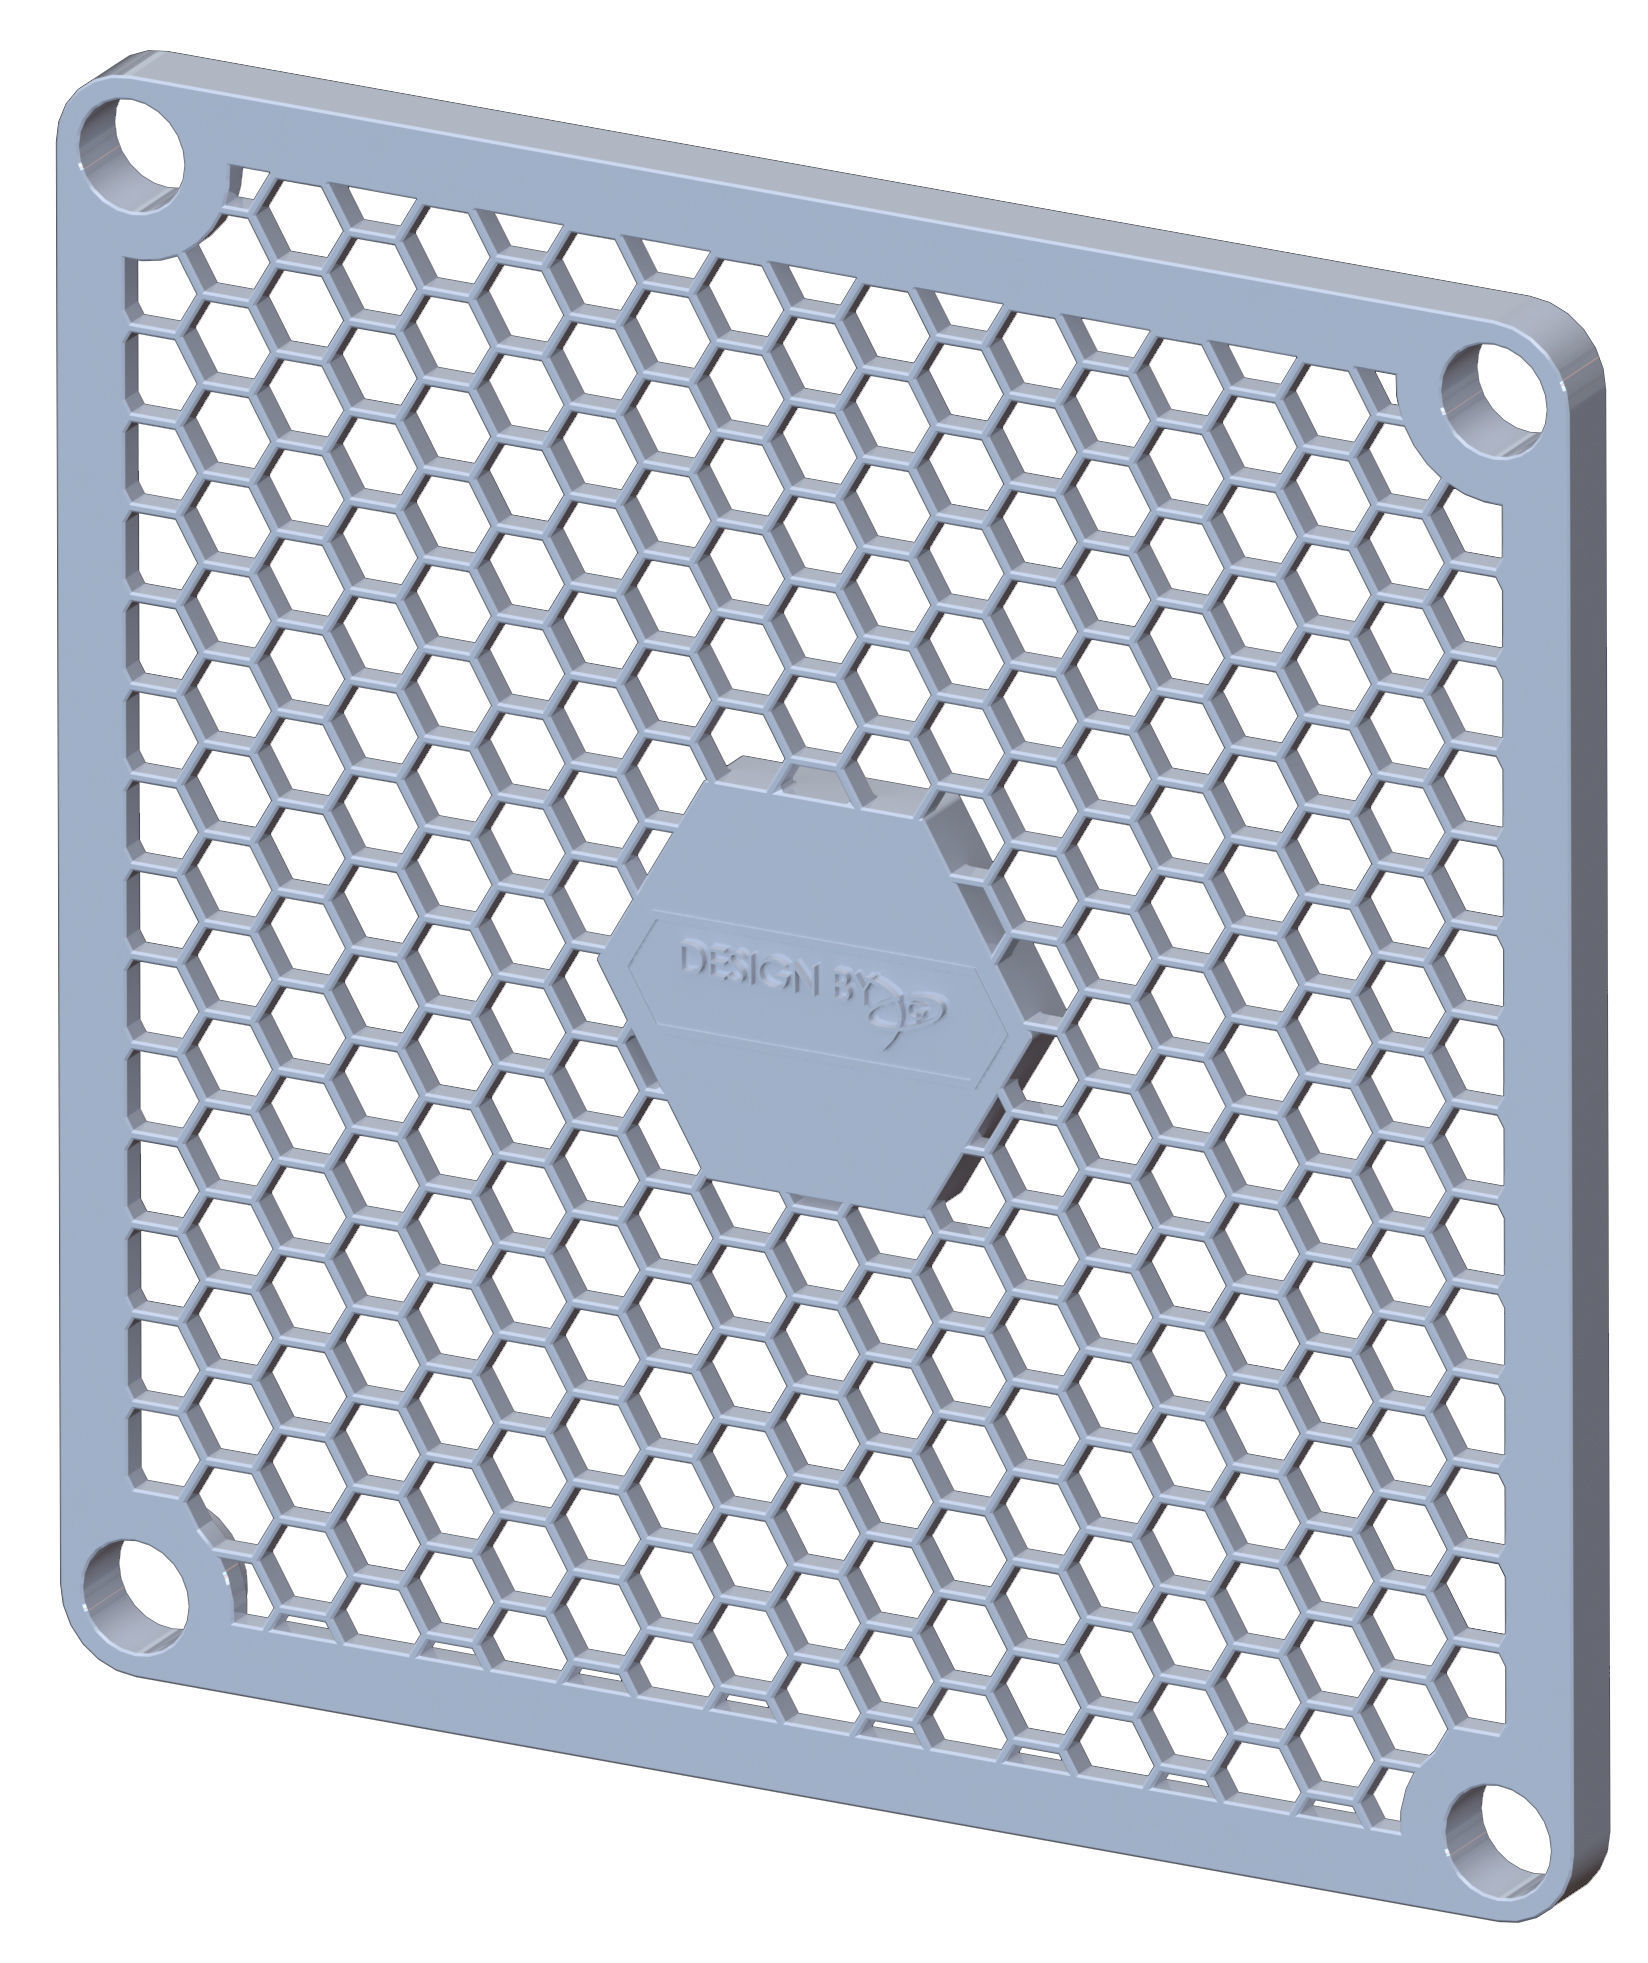 Computer chassis hexagonal fan cover